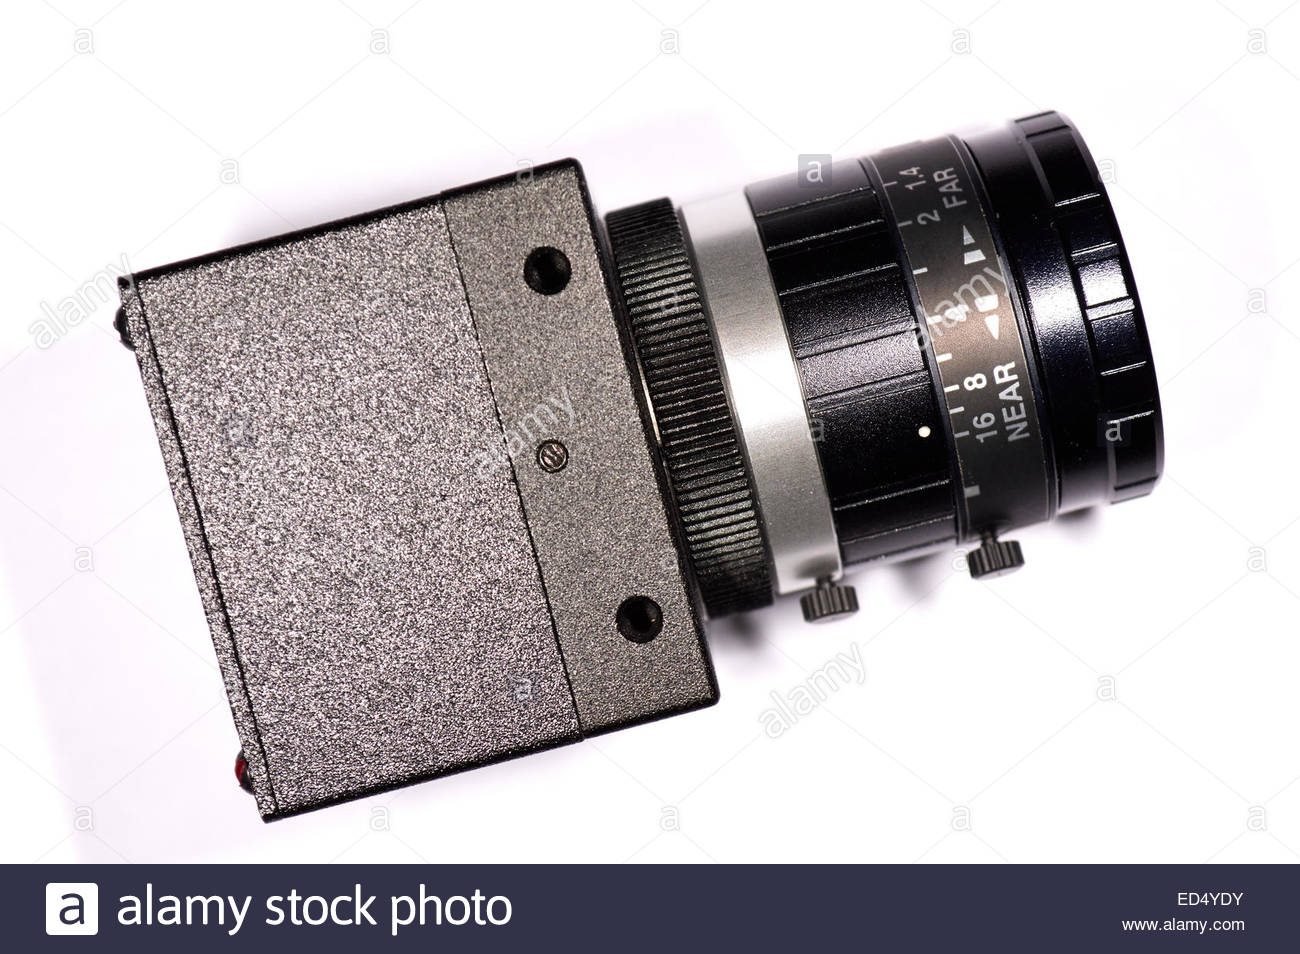 Particular the focus to camera for scan dental - Stock Image